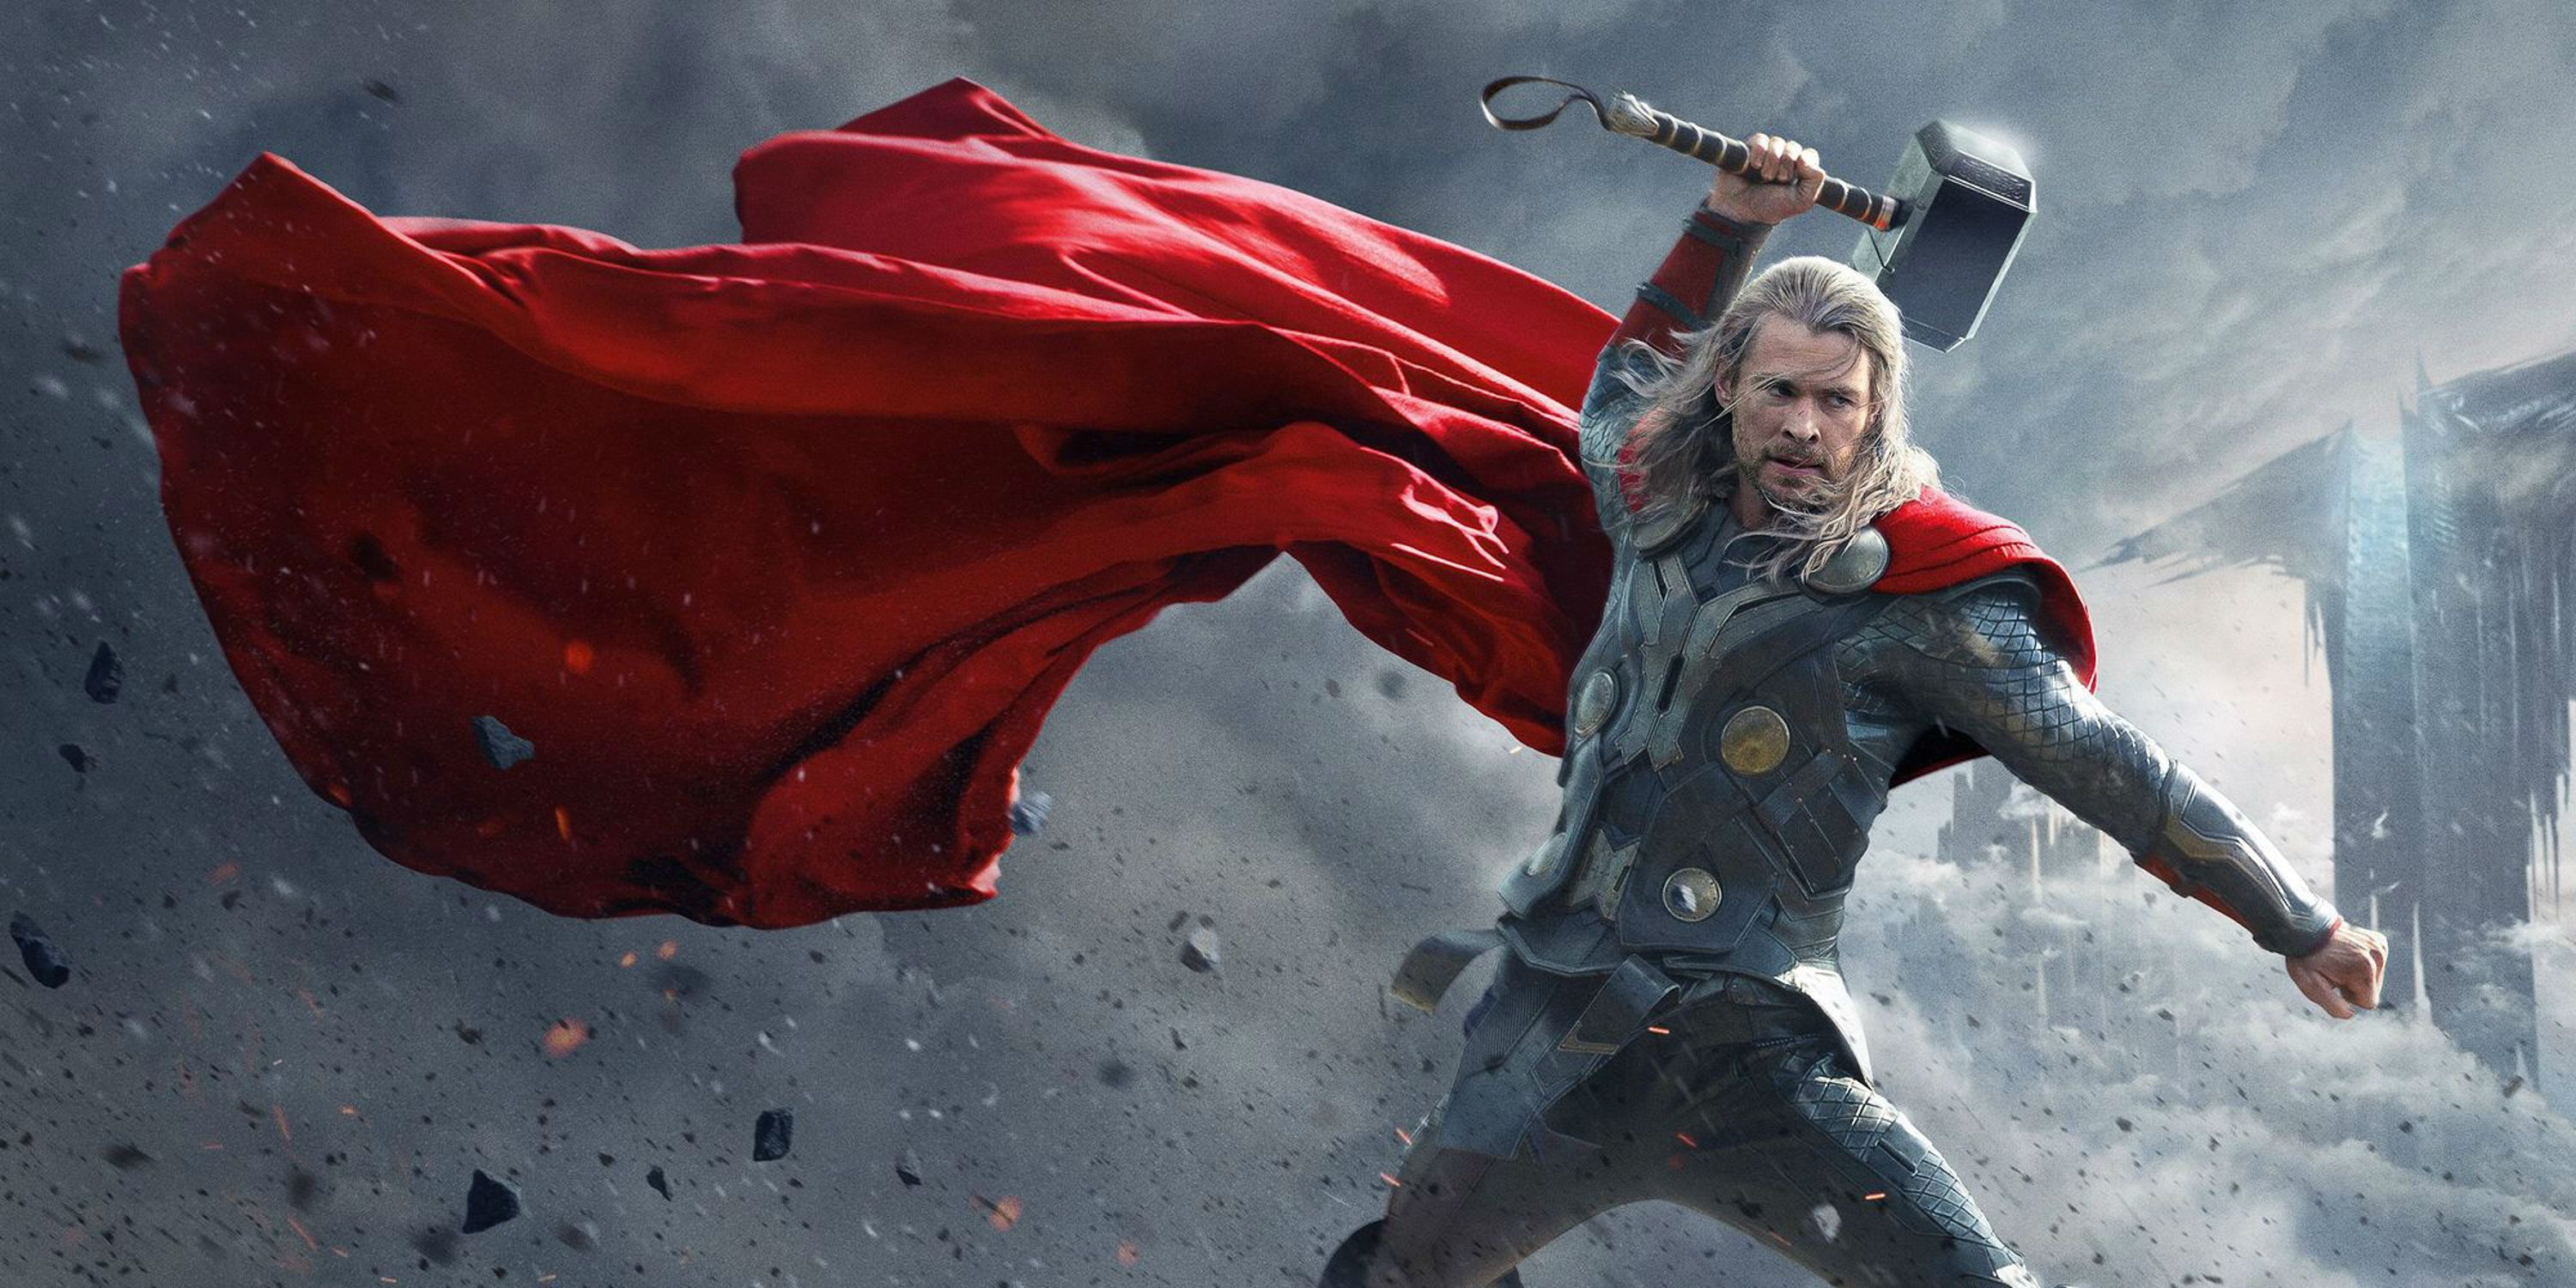 Thor wallpapers, Comics, HQ Thor pictures